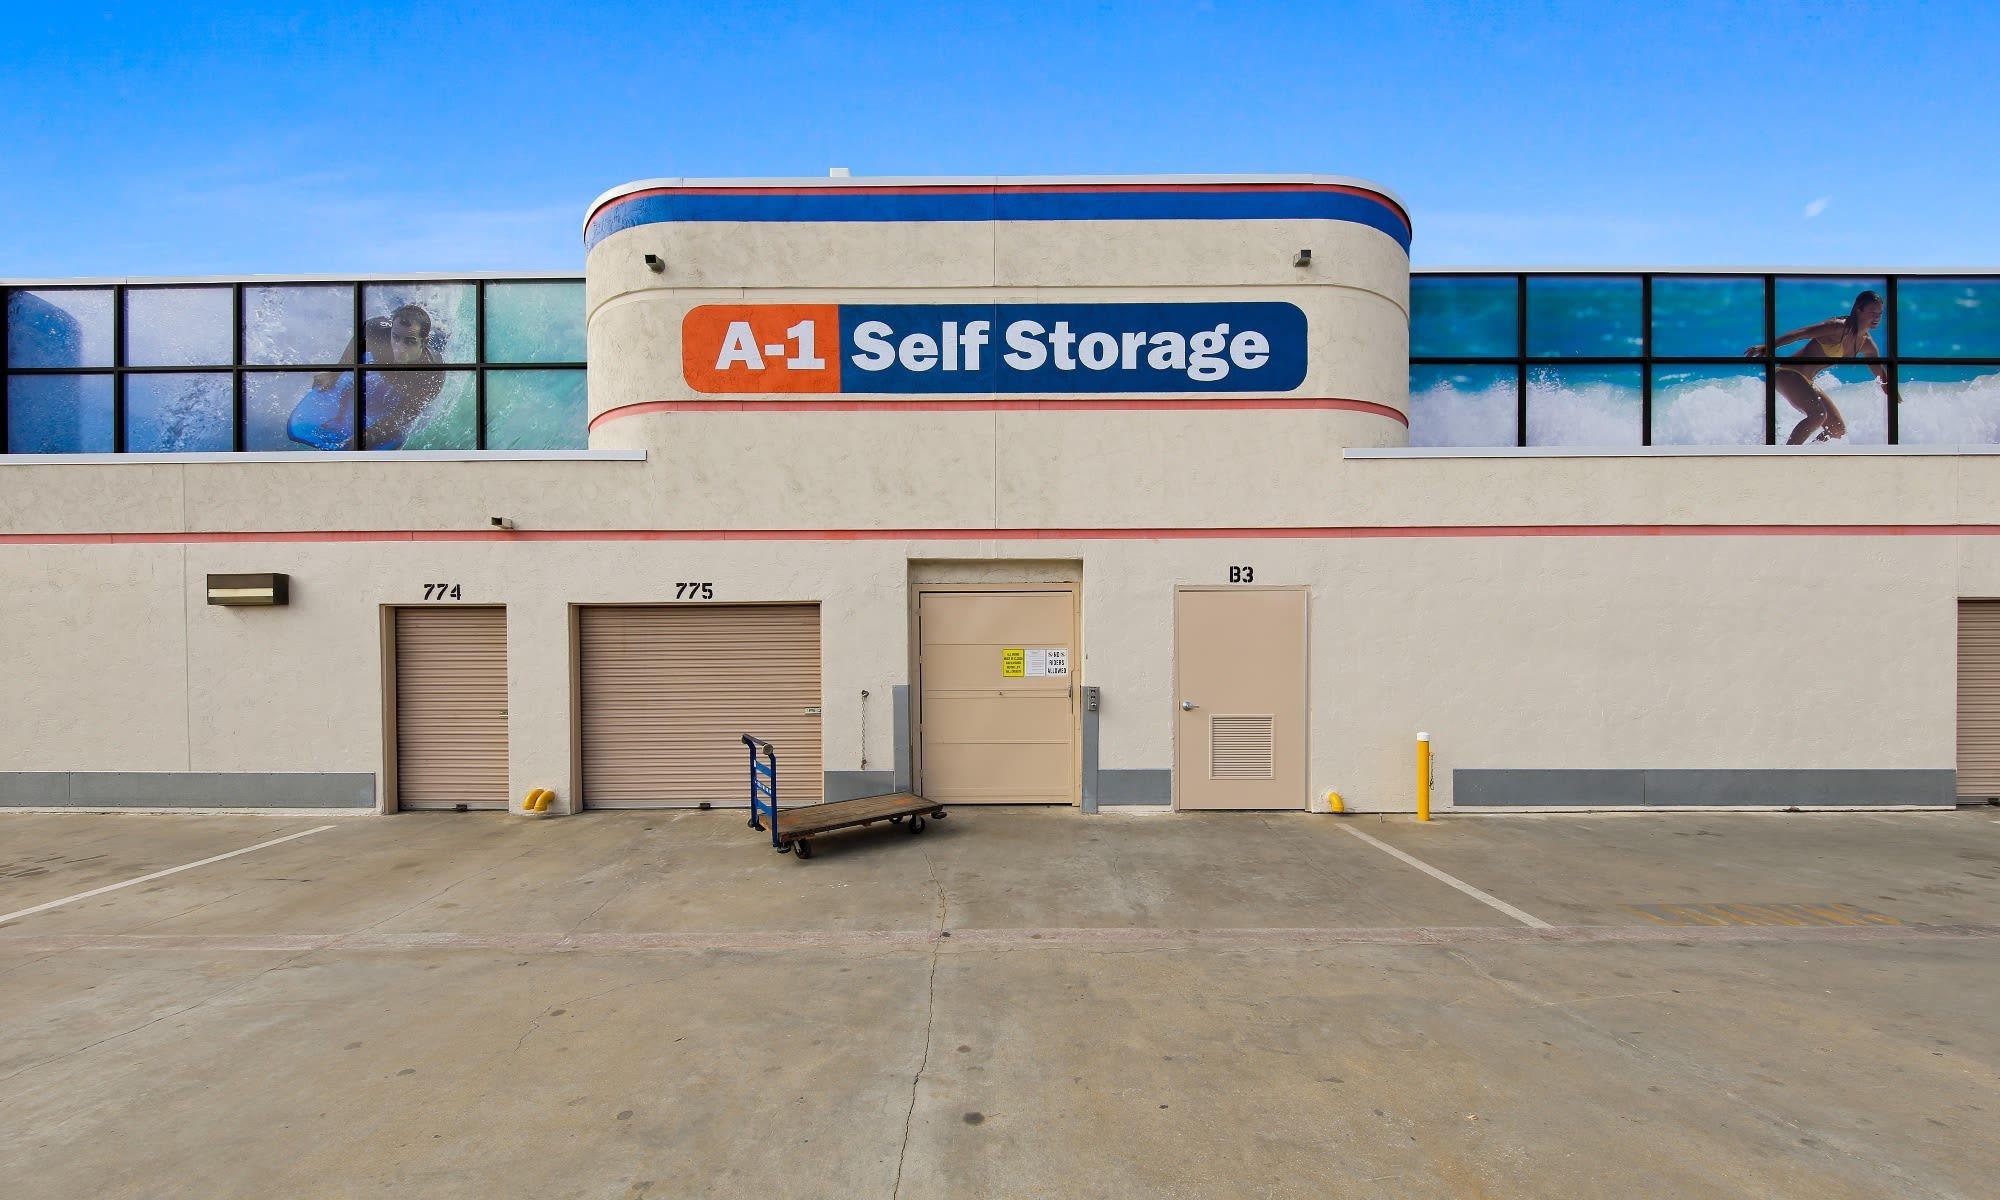 Self storage in La Mesa CA